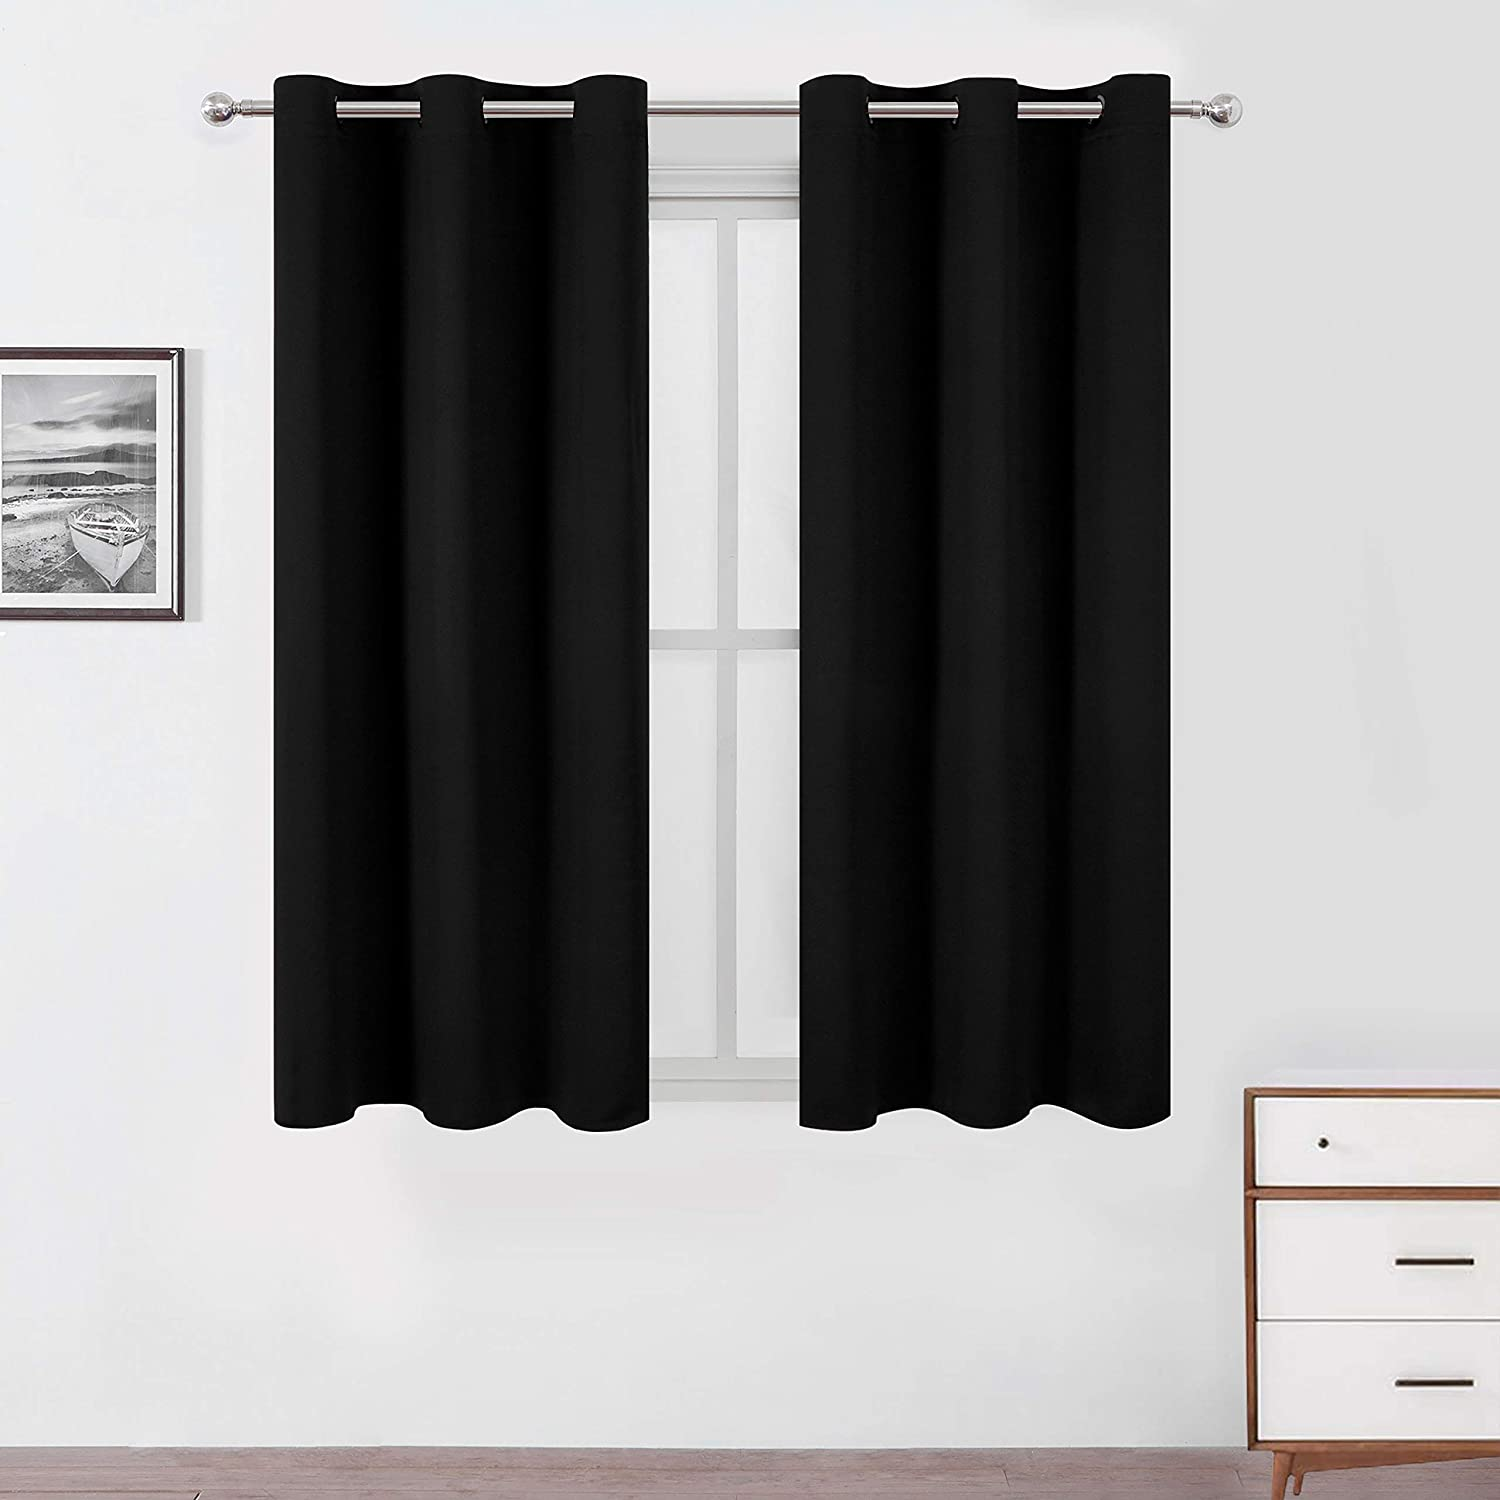 LEMOMO Black Blackout Curtains/42 x 63 Inch/Set of Two Panels Grommet Room Darkening Curtains for Thermal Insulated Bedroom Curtains